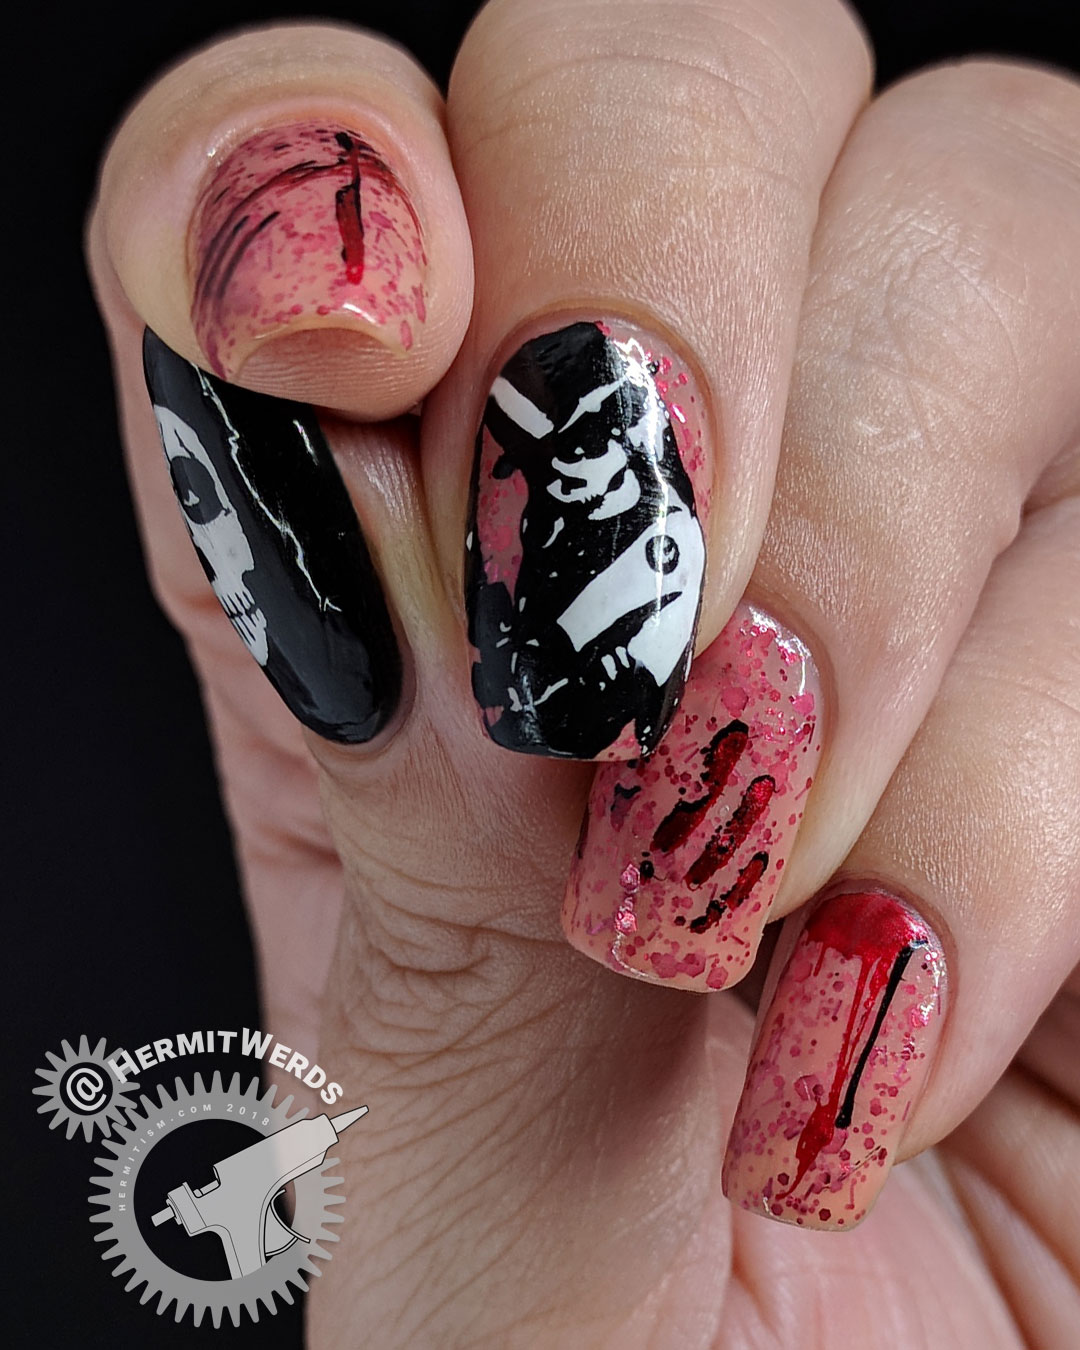 "Witch of Slaughter - Hermit Werds - nail art of a lack and white skull-faced witch with bloody stamping on China Glaze's morbid ""Don't Let the Dead Bite"""